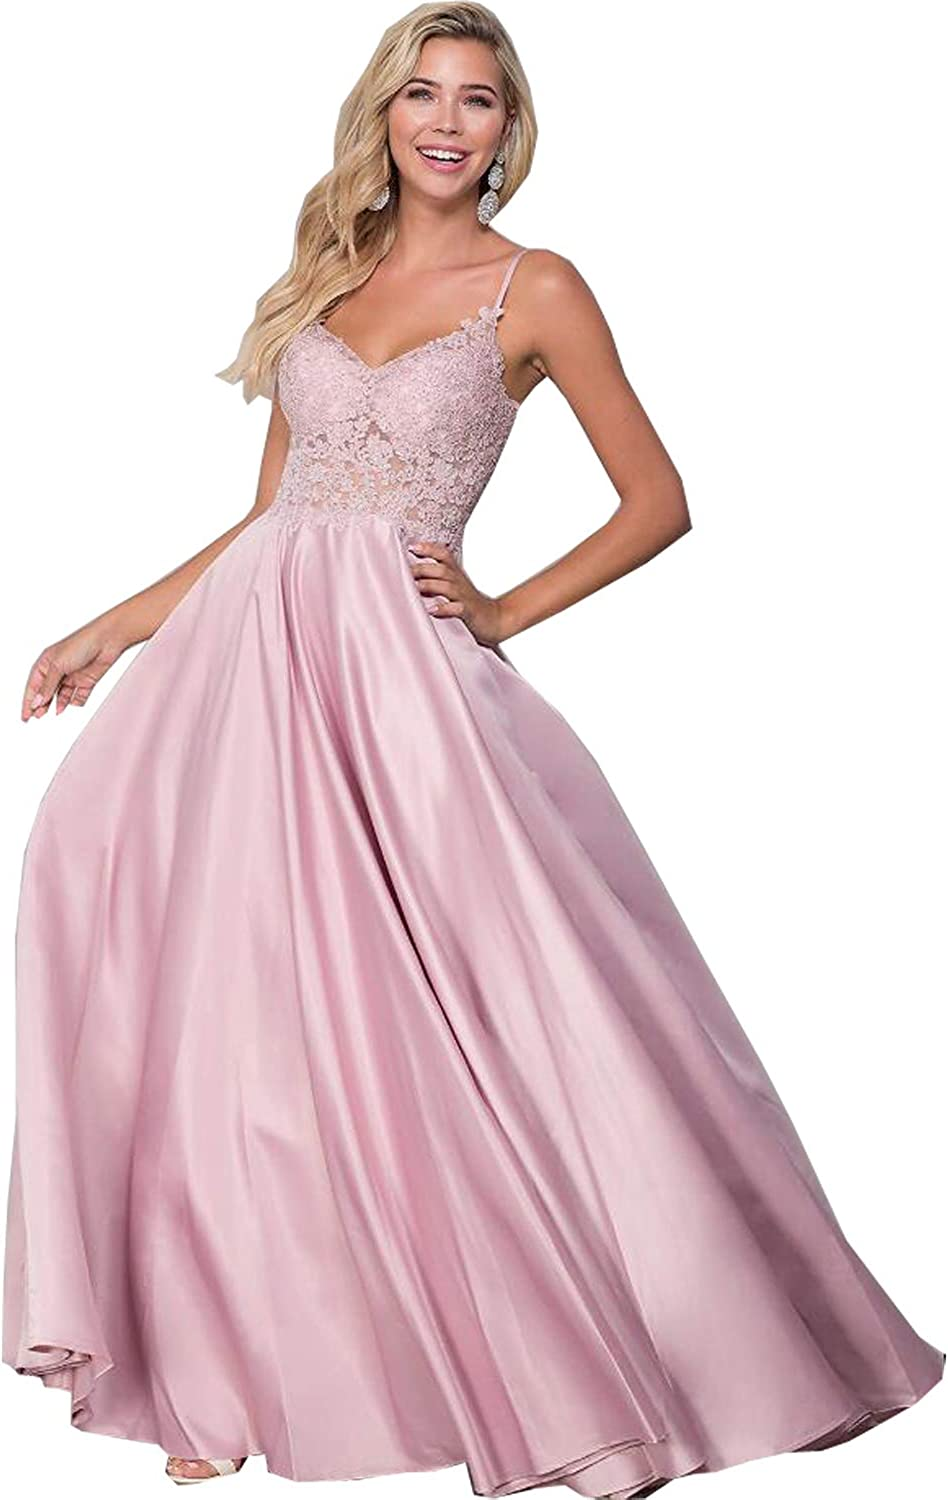 Cadoly Women's Long Bridesmaid Dresses Max 76% OFF Sales results No. 1 Dress Prom Formal Ev Lace